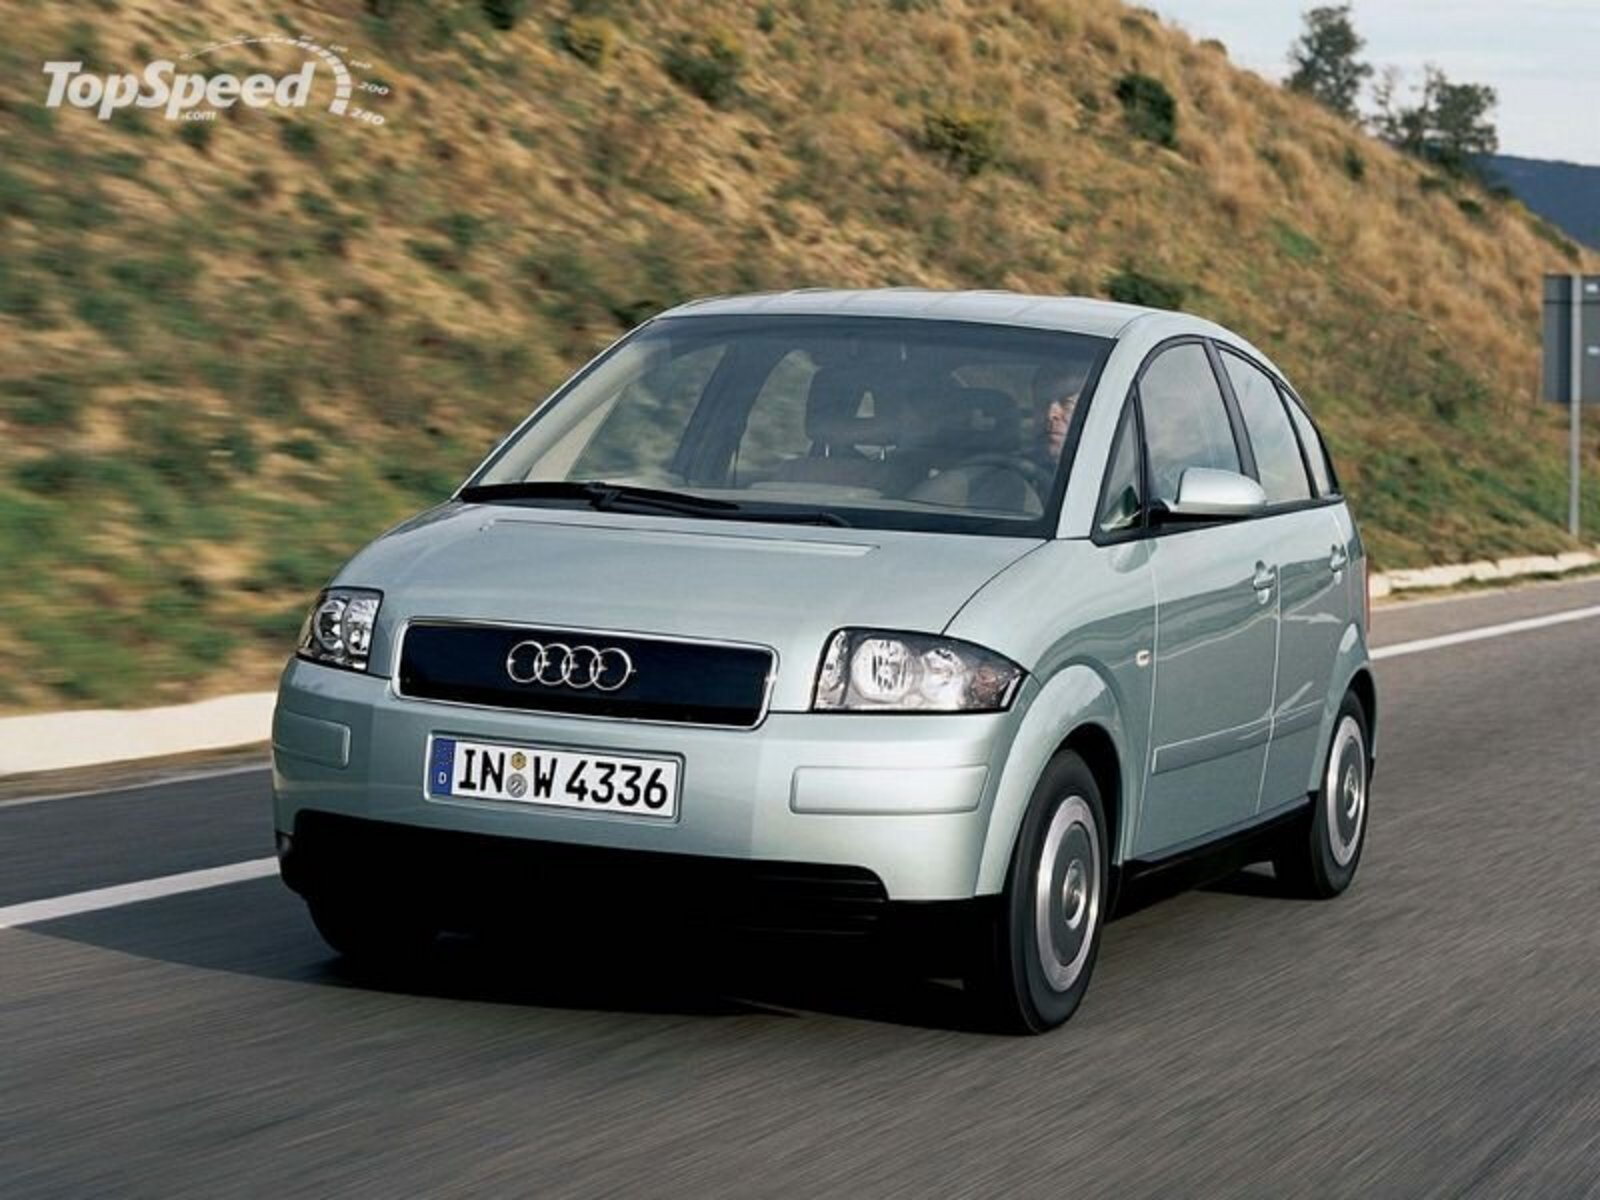 2013 audi a2 review top speed. Black Bedroom Furniture Sets. Home Design Ideas